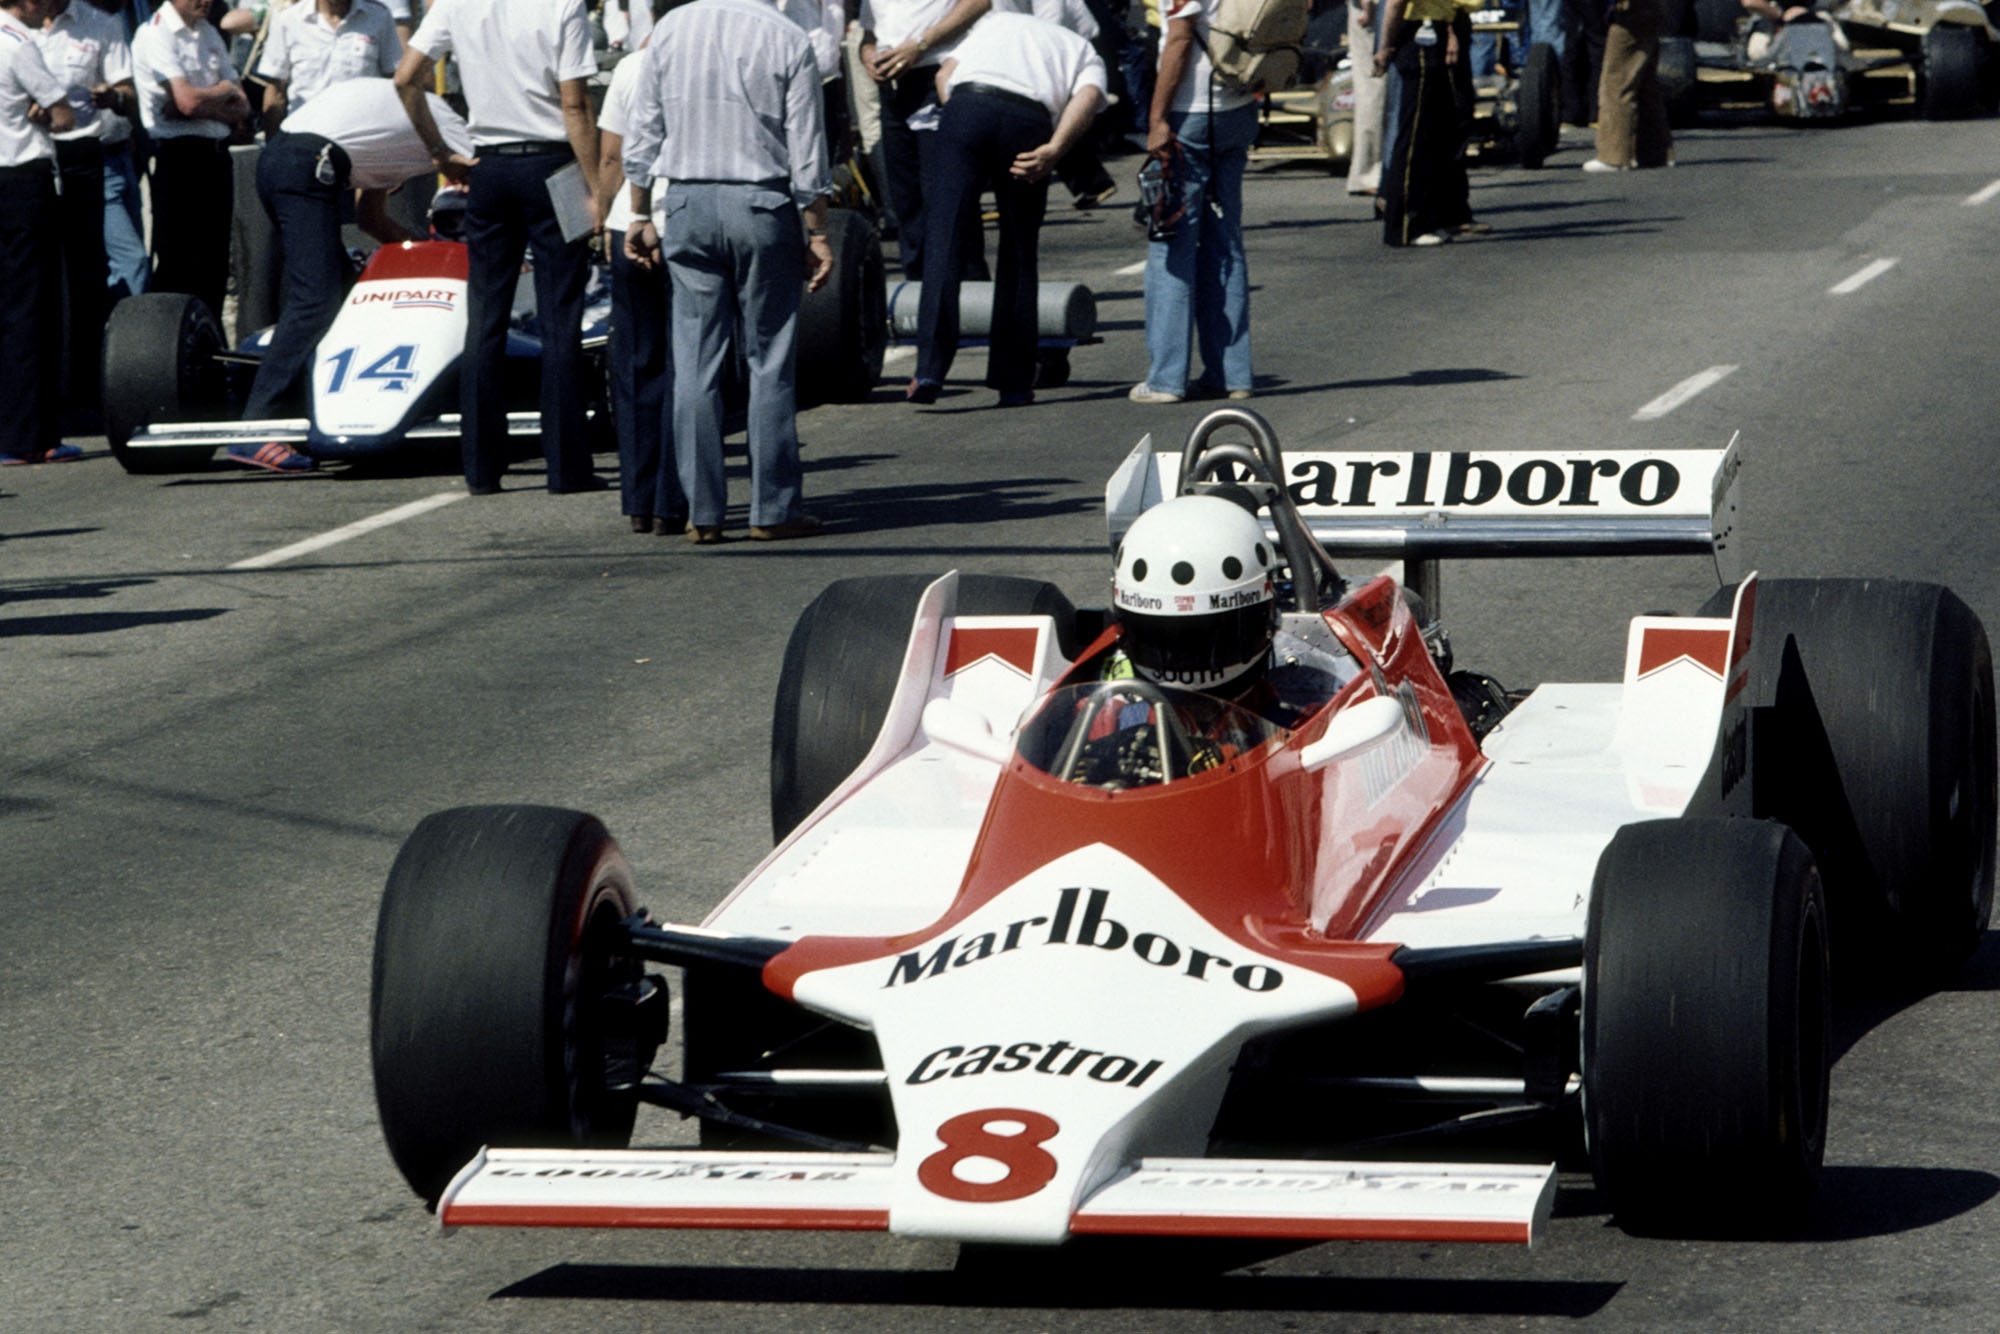 Stephen South drives the #8 Marlboro Team McLaren Ford M29C out of the pit lane during practice for the United States Grand Prix West on 29 March 1980 at Long Beach street circuit in Long Beach, California, United States. (Photo by Steve Powell/Getty Images)